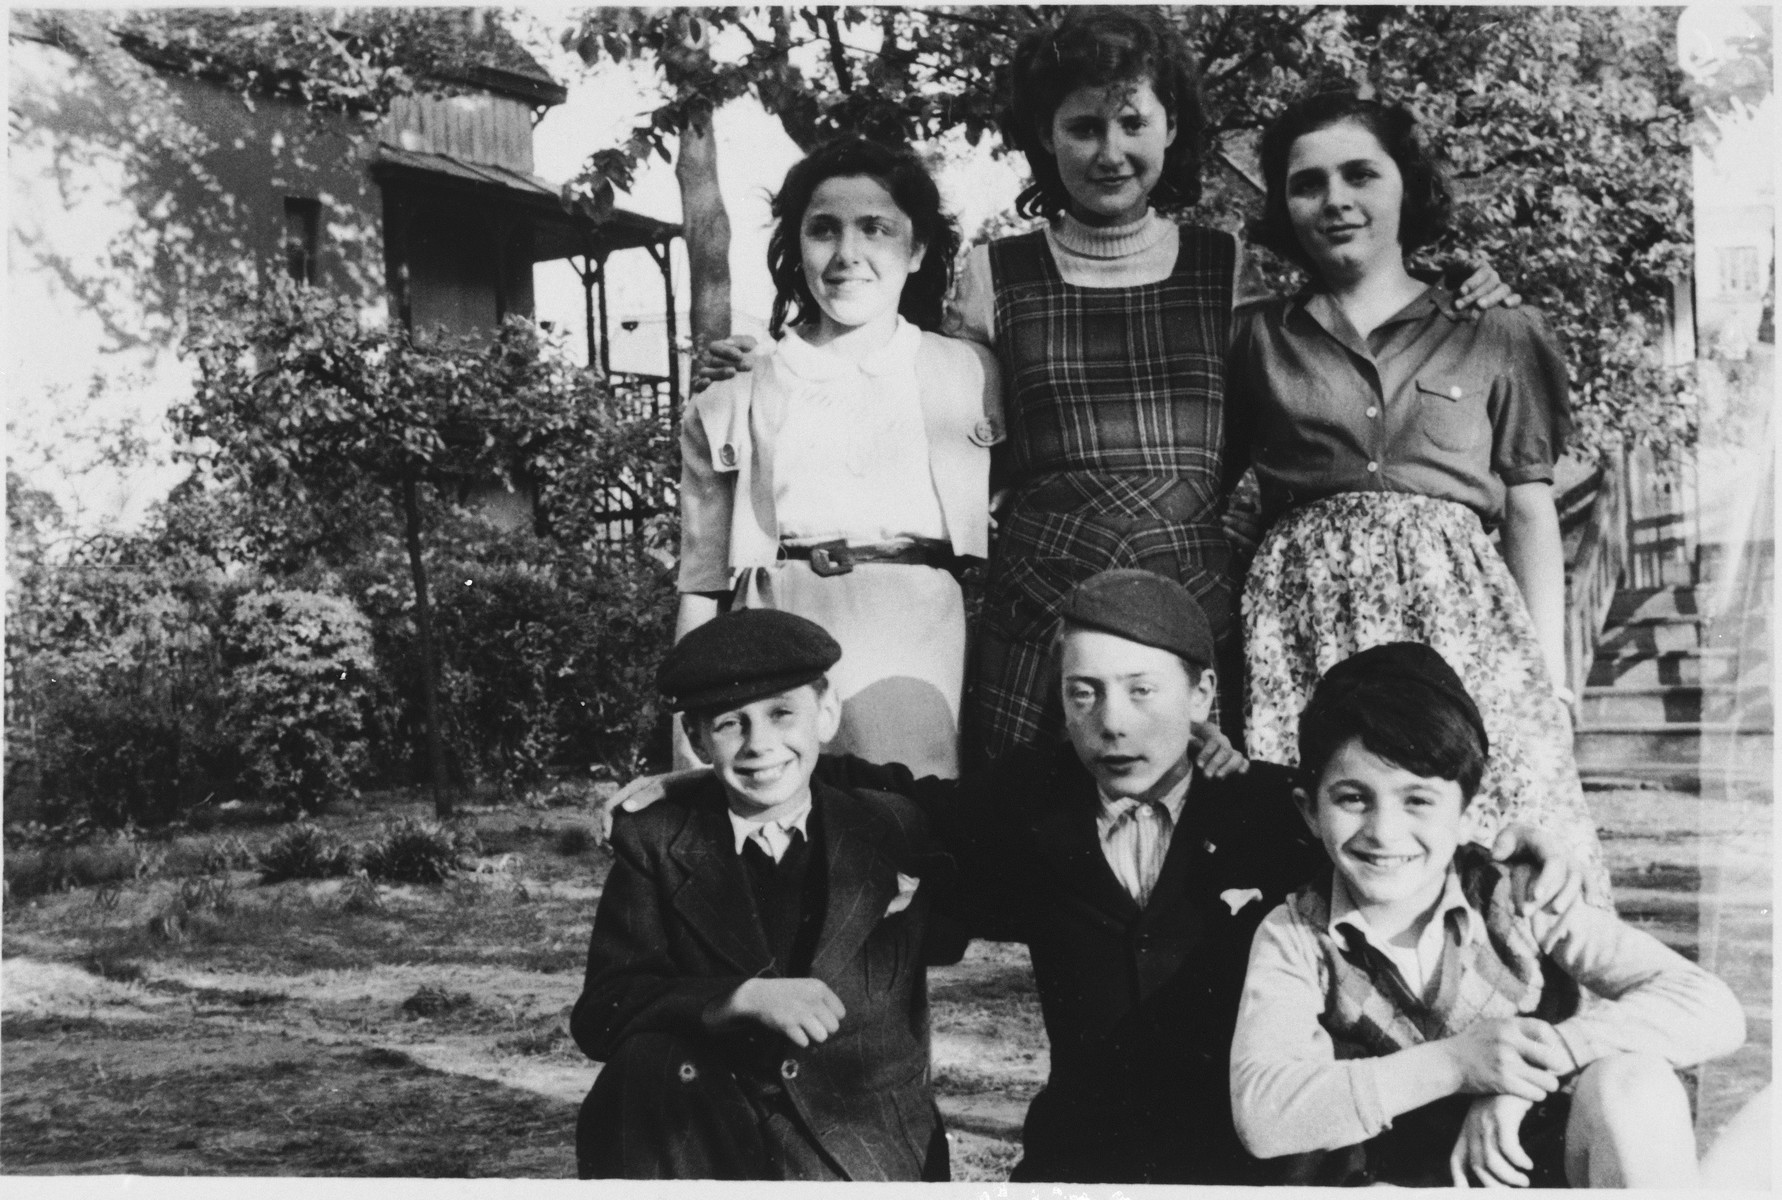 Six children pose outside the Mariaburg DP children's home near Antwerp.  Seated in front is Arnold Peterfreund (left) and Alfred Friedmann (center),  Among those pictured in back is Rozette Poler.